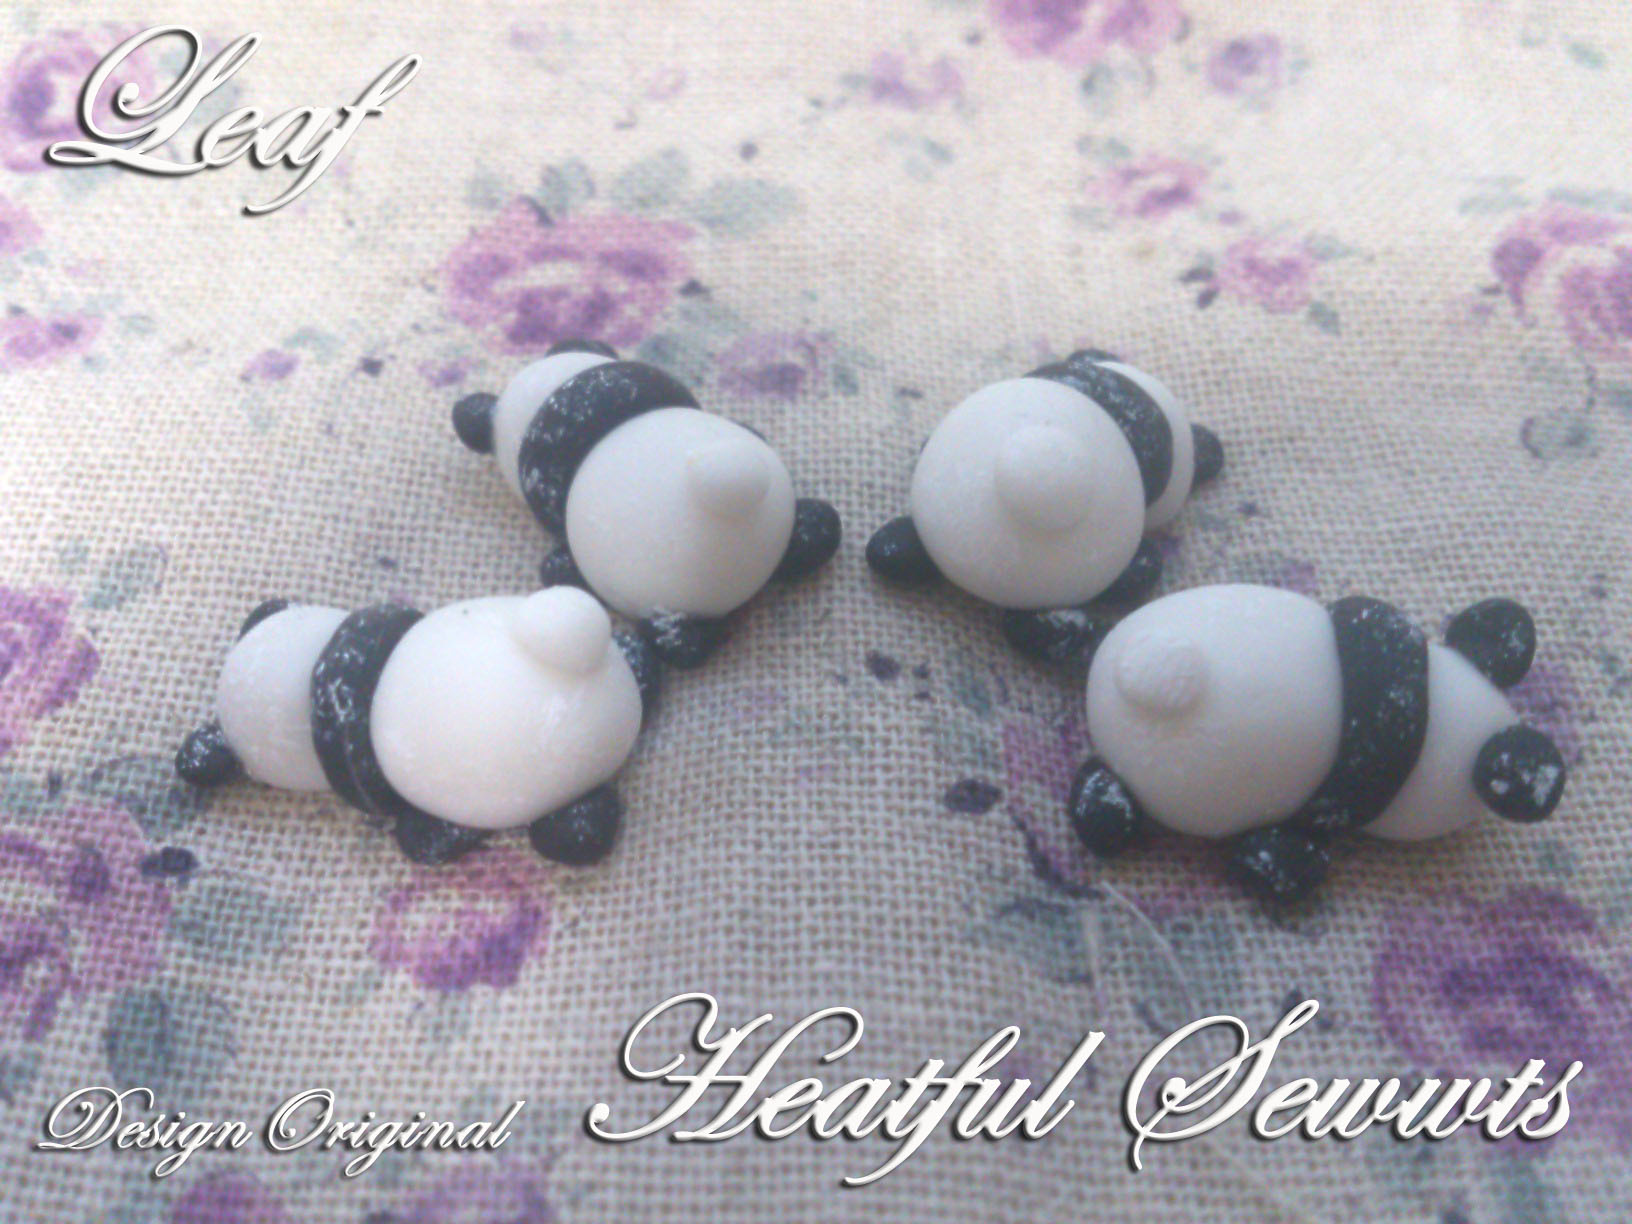 おしりパンだ♪ Design Original Heartful Sweets_e0074359_13233396.jpg